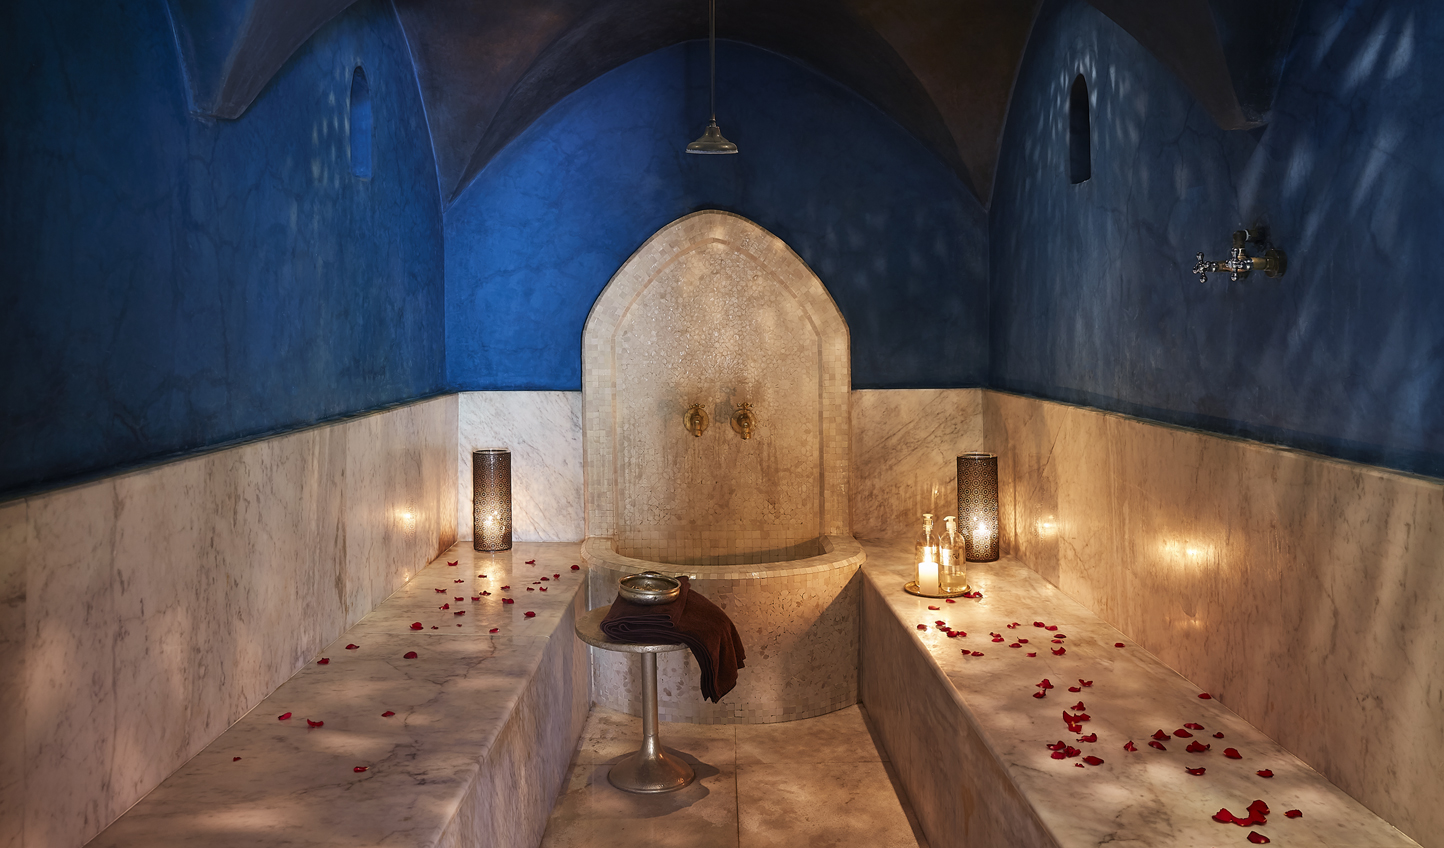 Unwind with a traditional Hammam